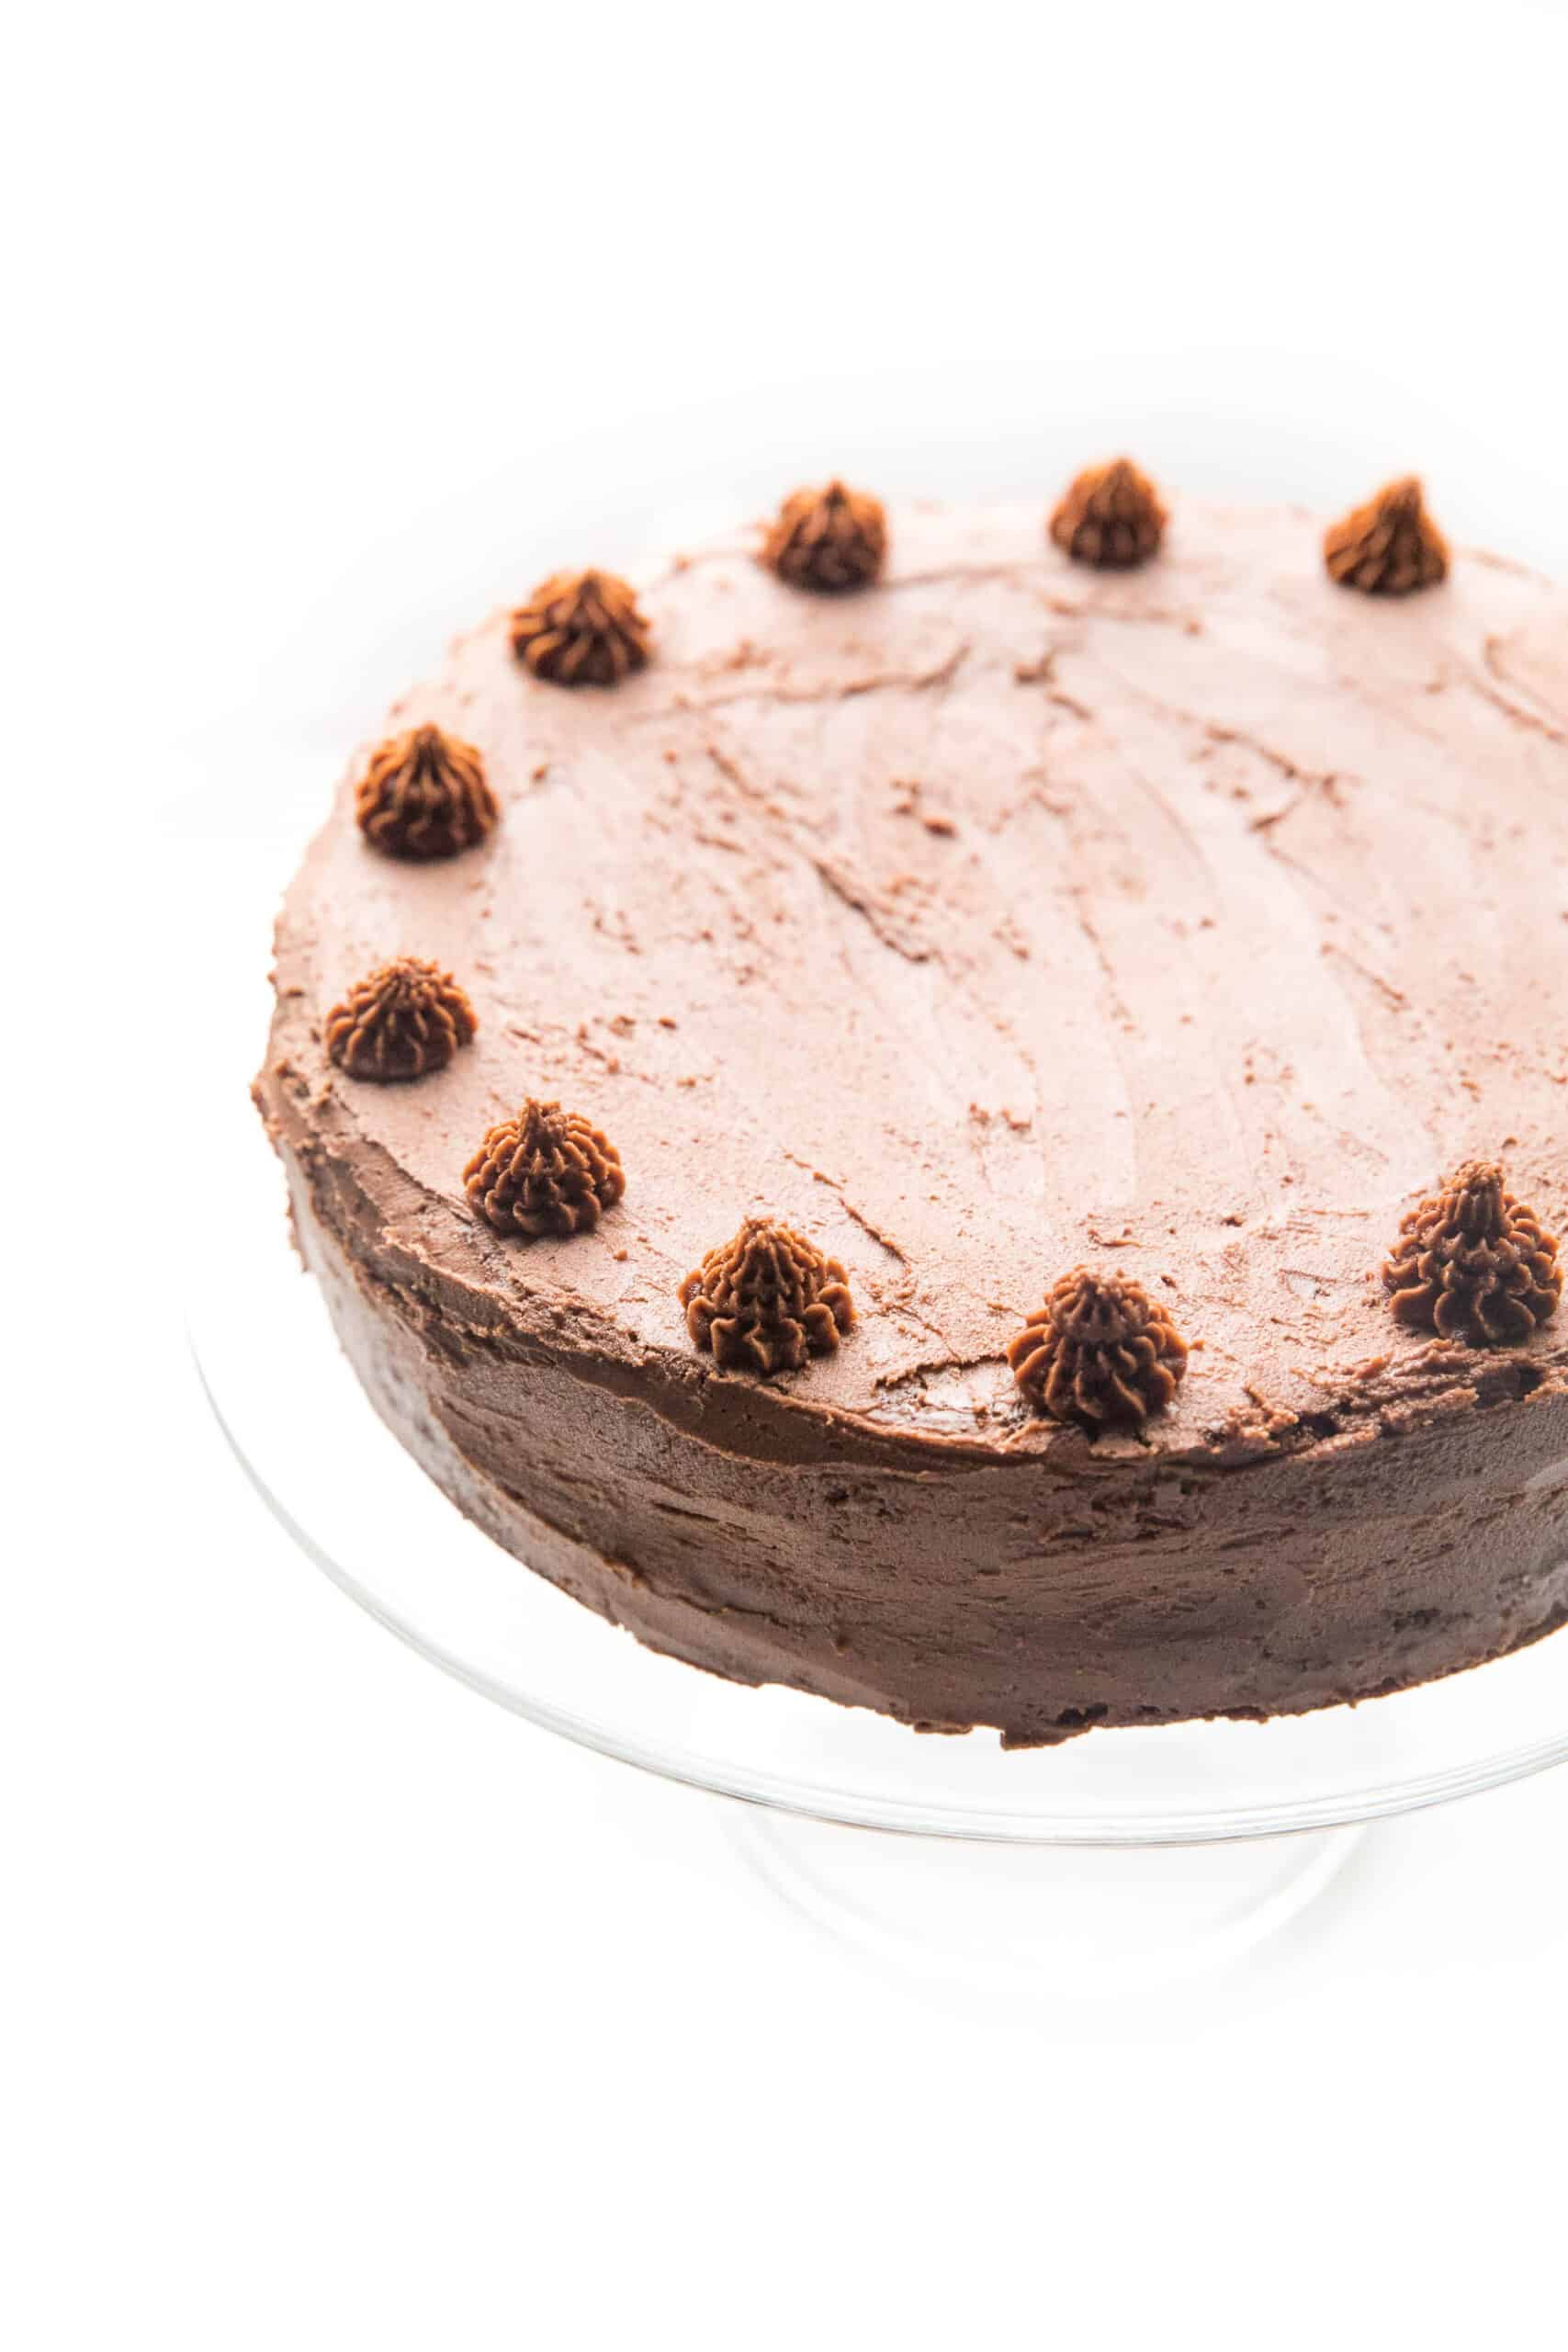 chocolate cake decorated on a white background